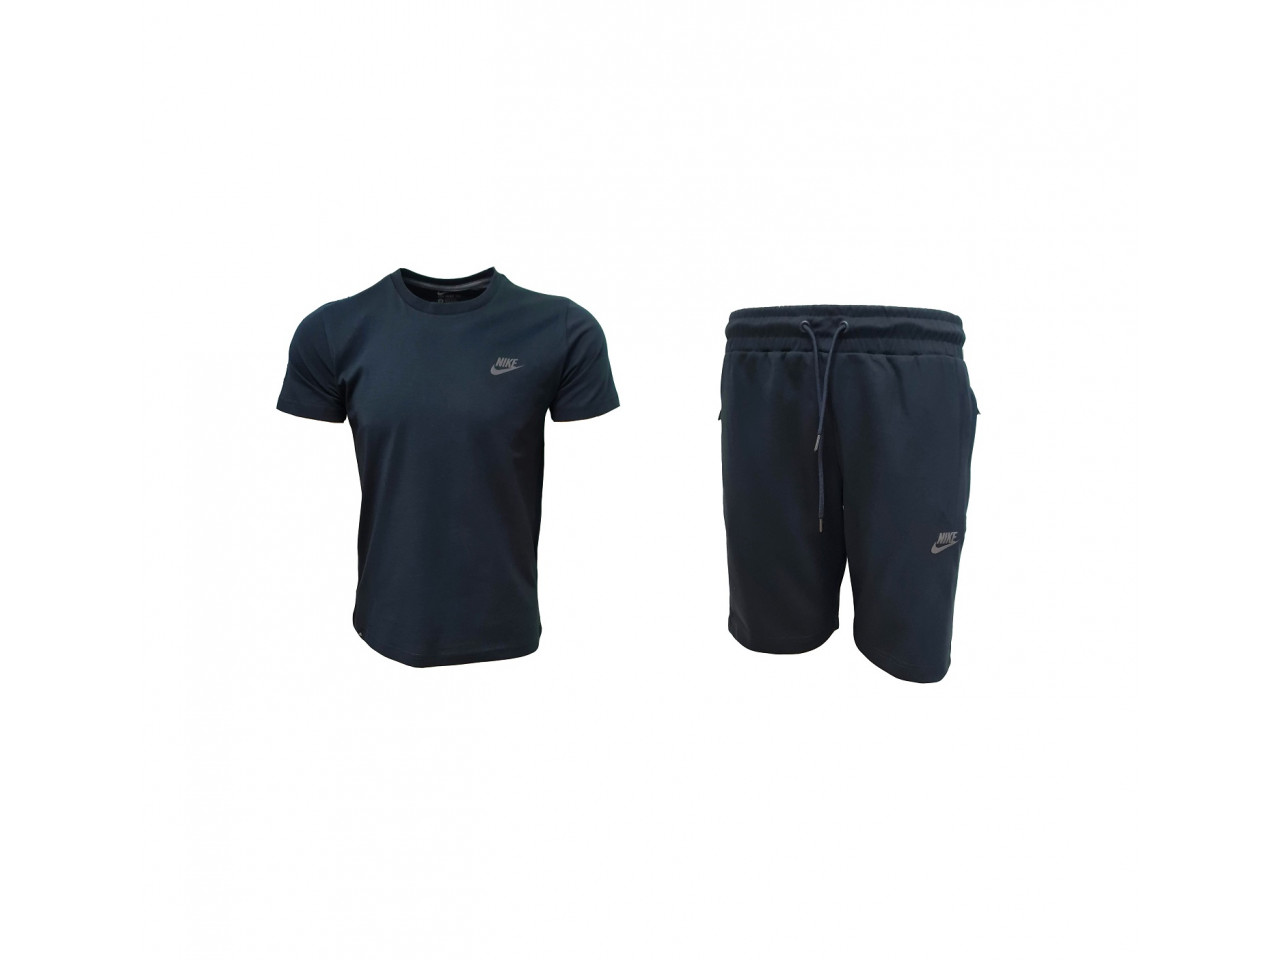 Nike INC. Shorts+ T-shirt Dark Blue